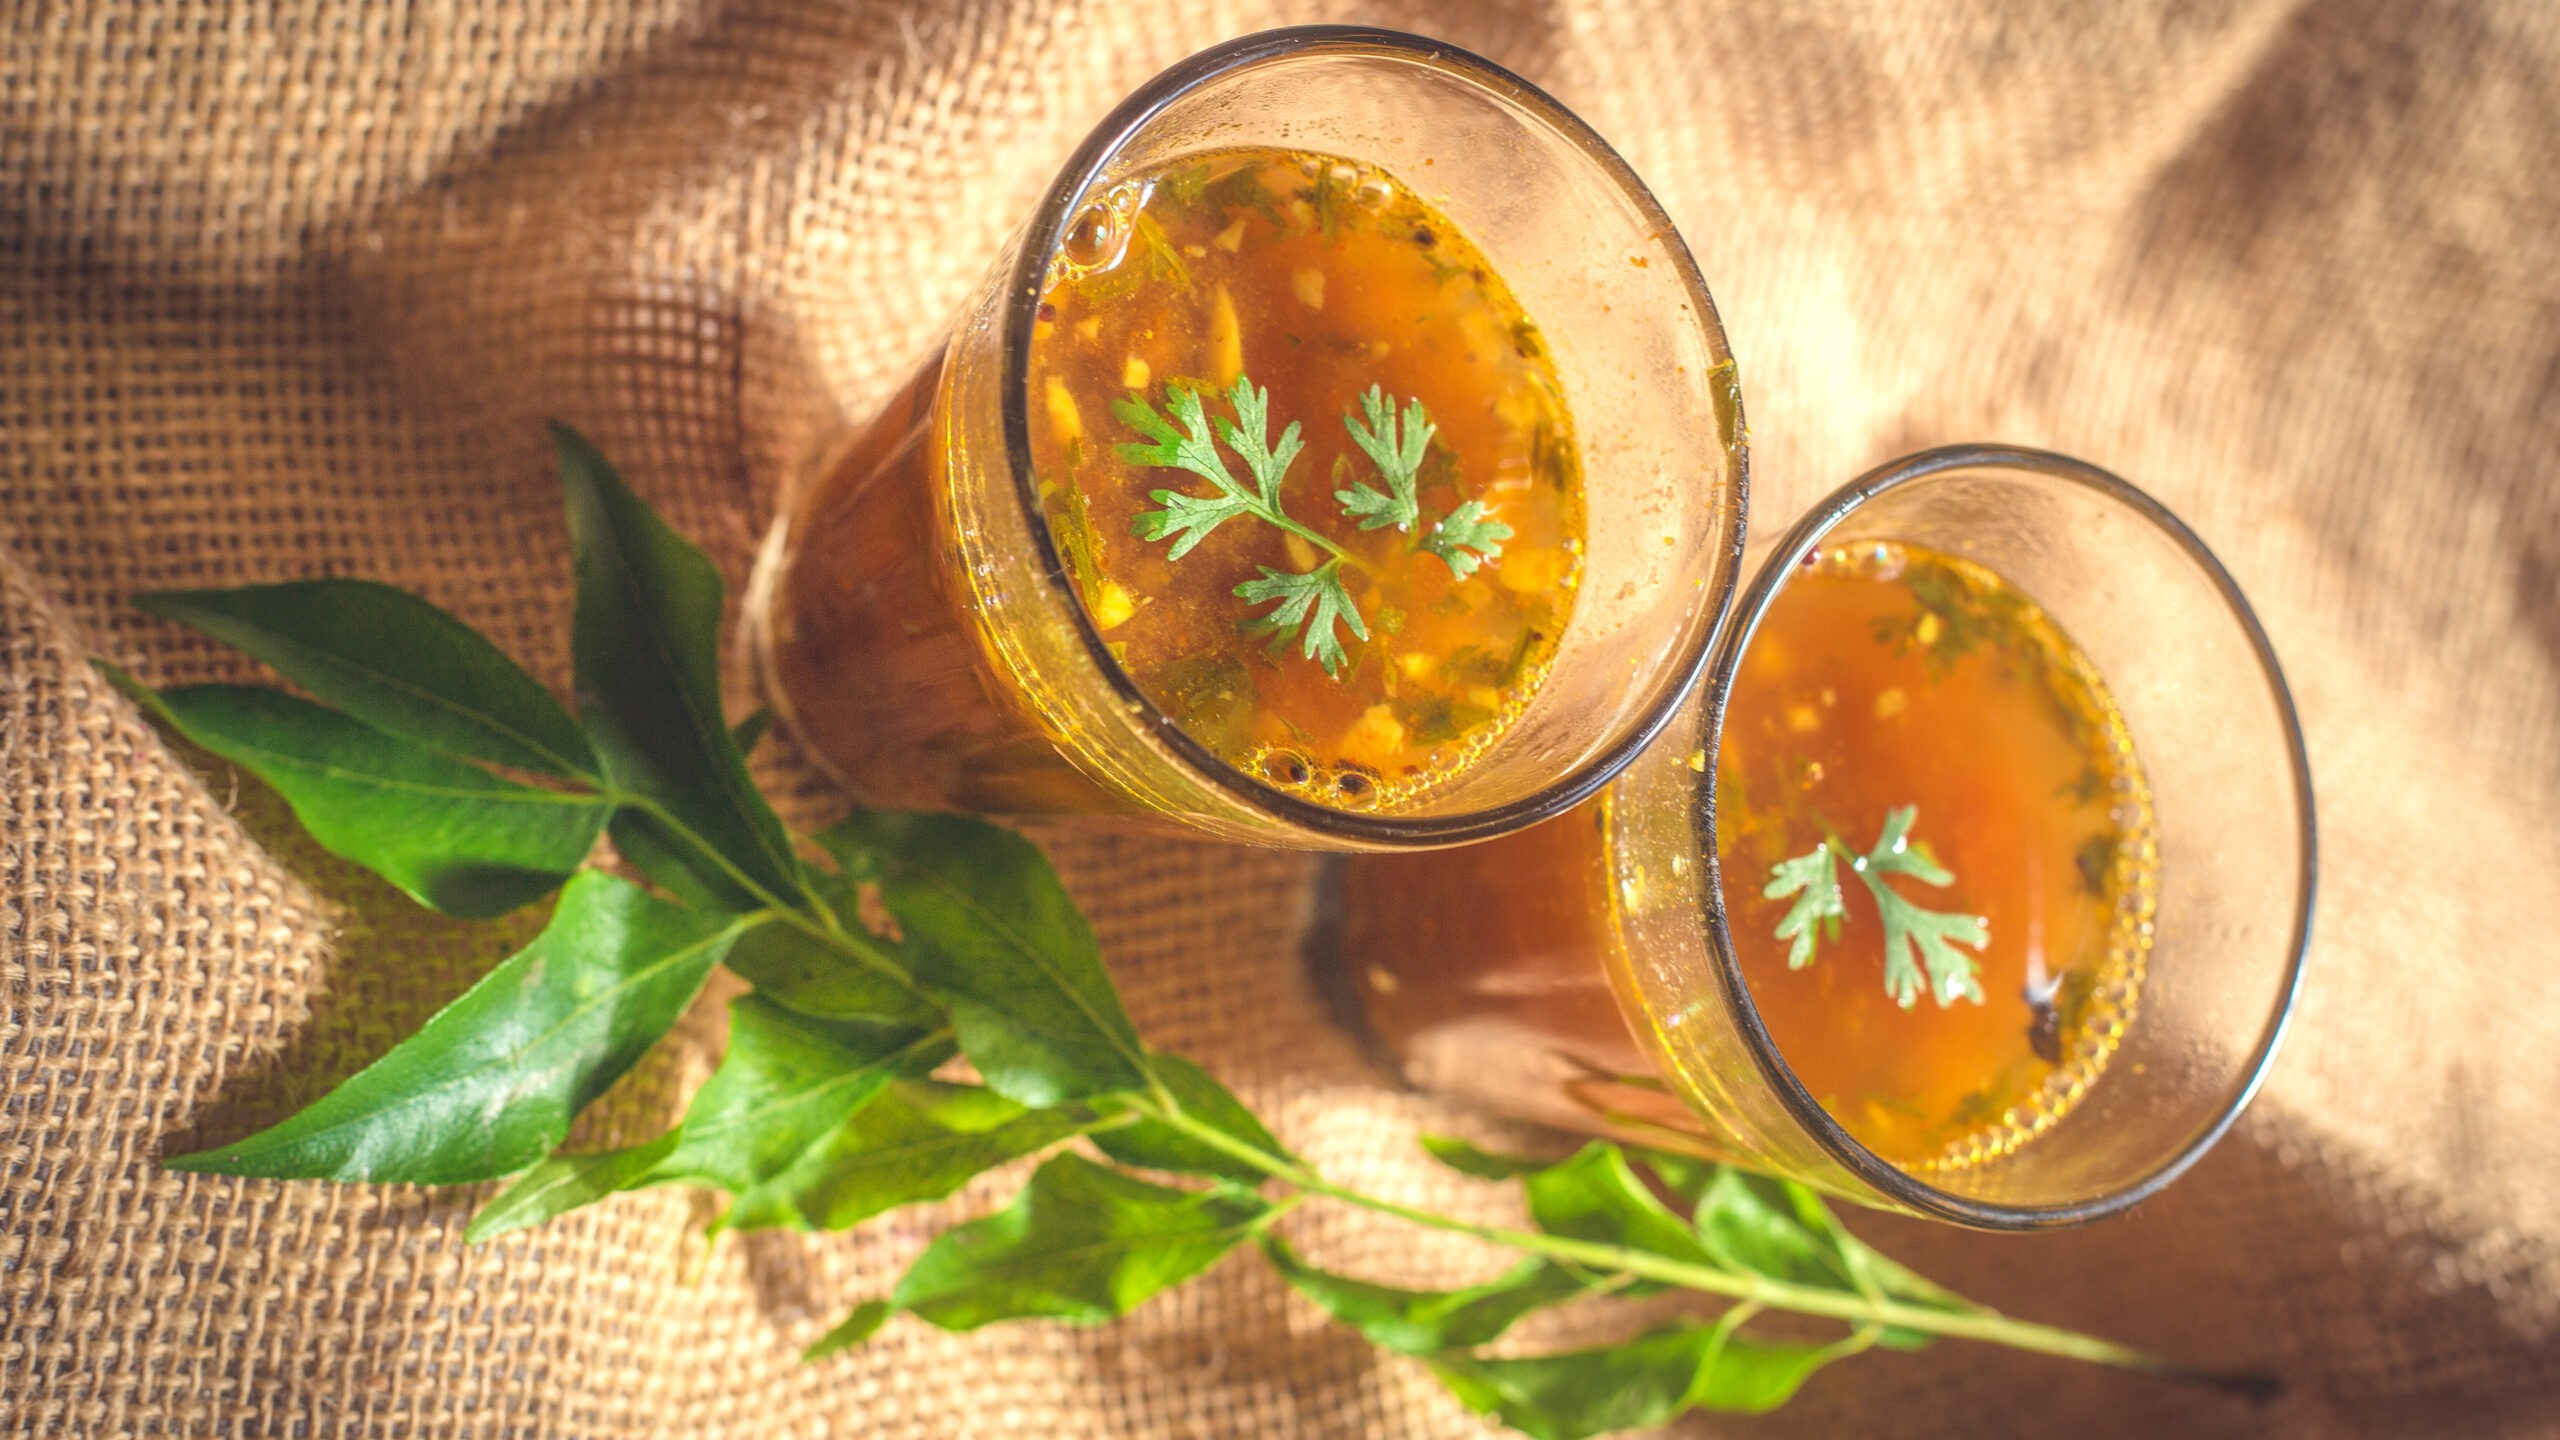 Spicy South Indian Drink Hot Favorite in the US